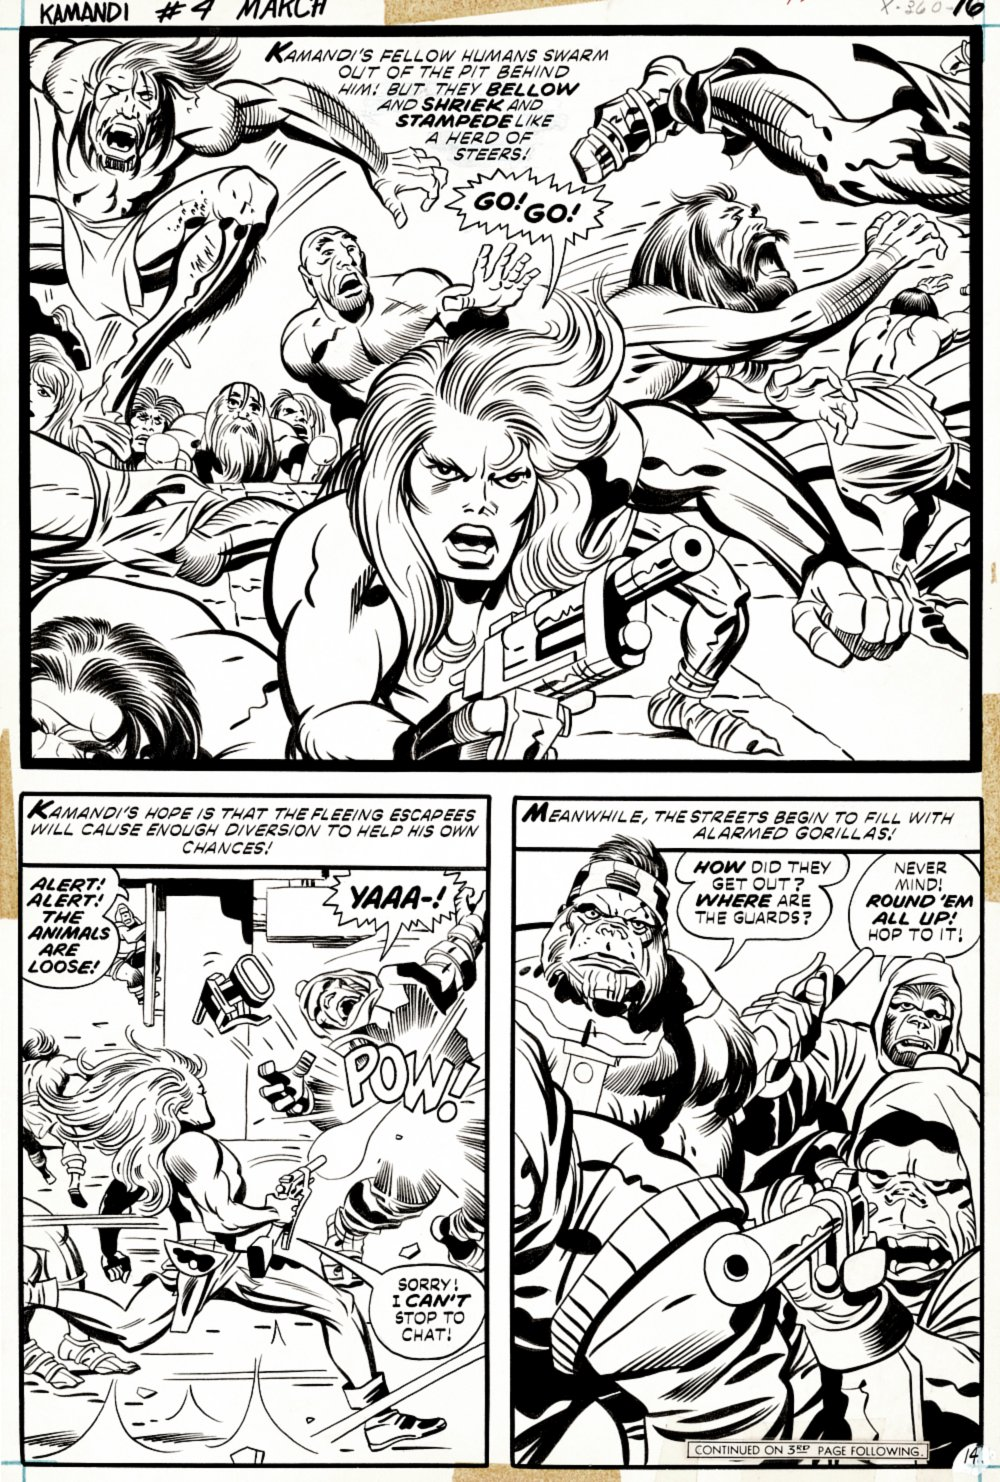 Kamandi #4 p 14 Semi-Splash (AWESOME EARLY KAMANDI SEMI-SPLASH BATTLE!) 1972